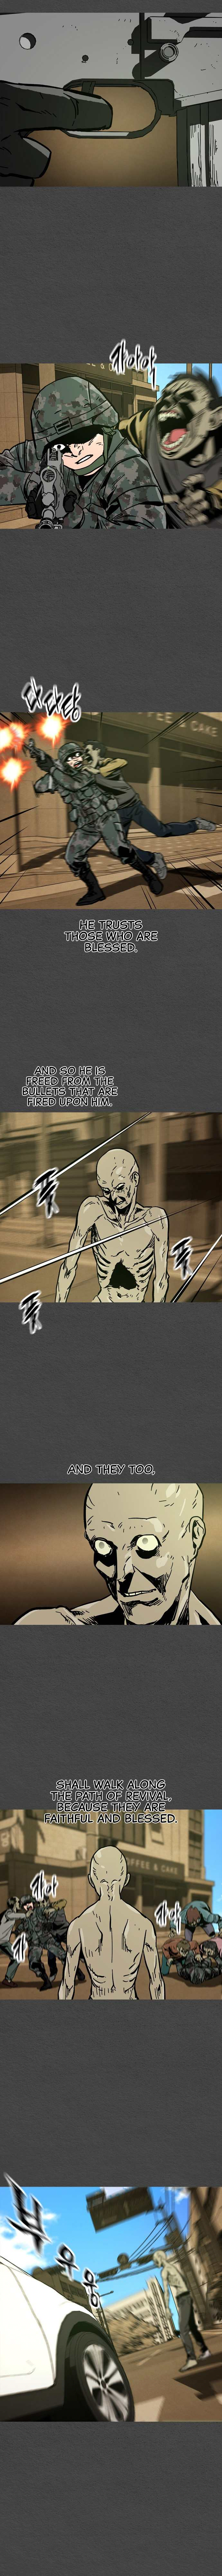 Dead Life - chapter 36 - #3